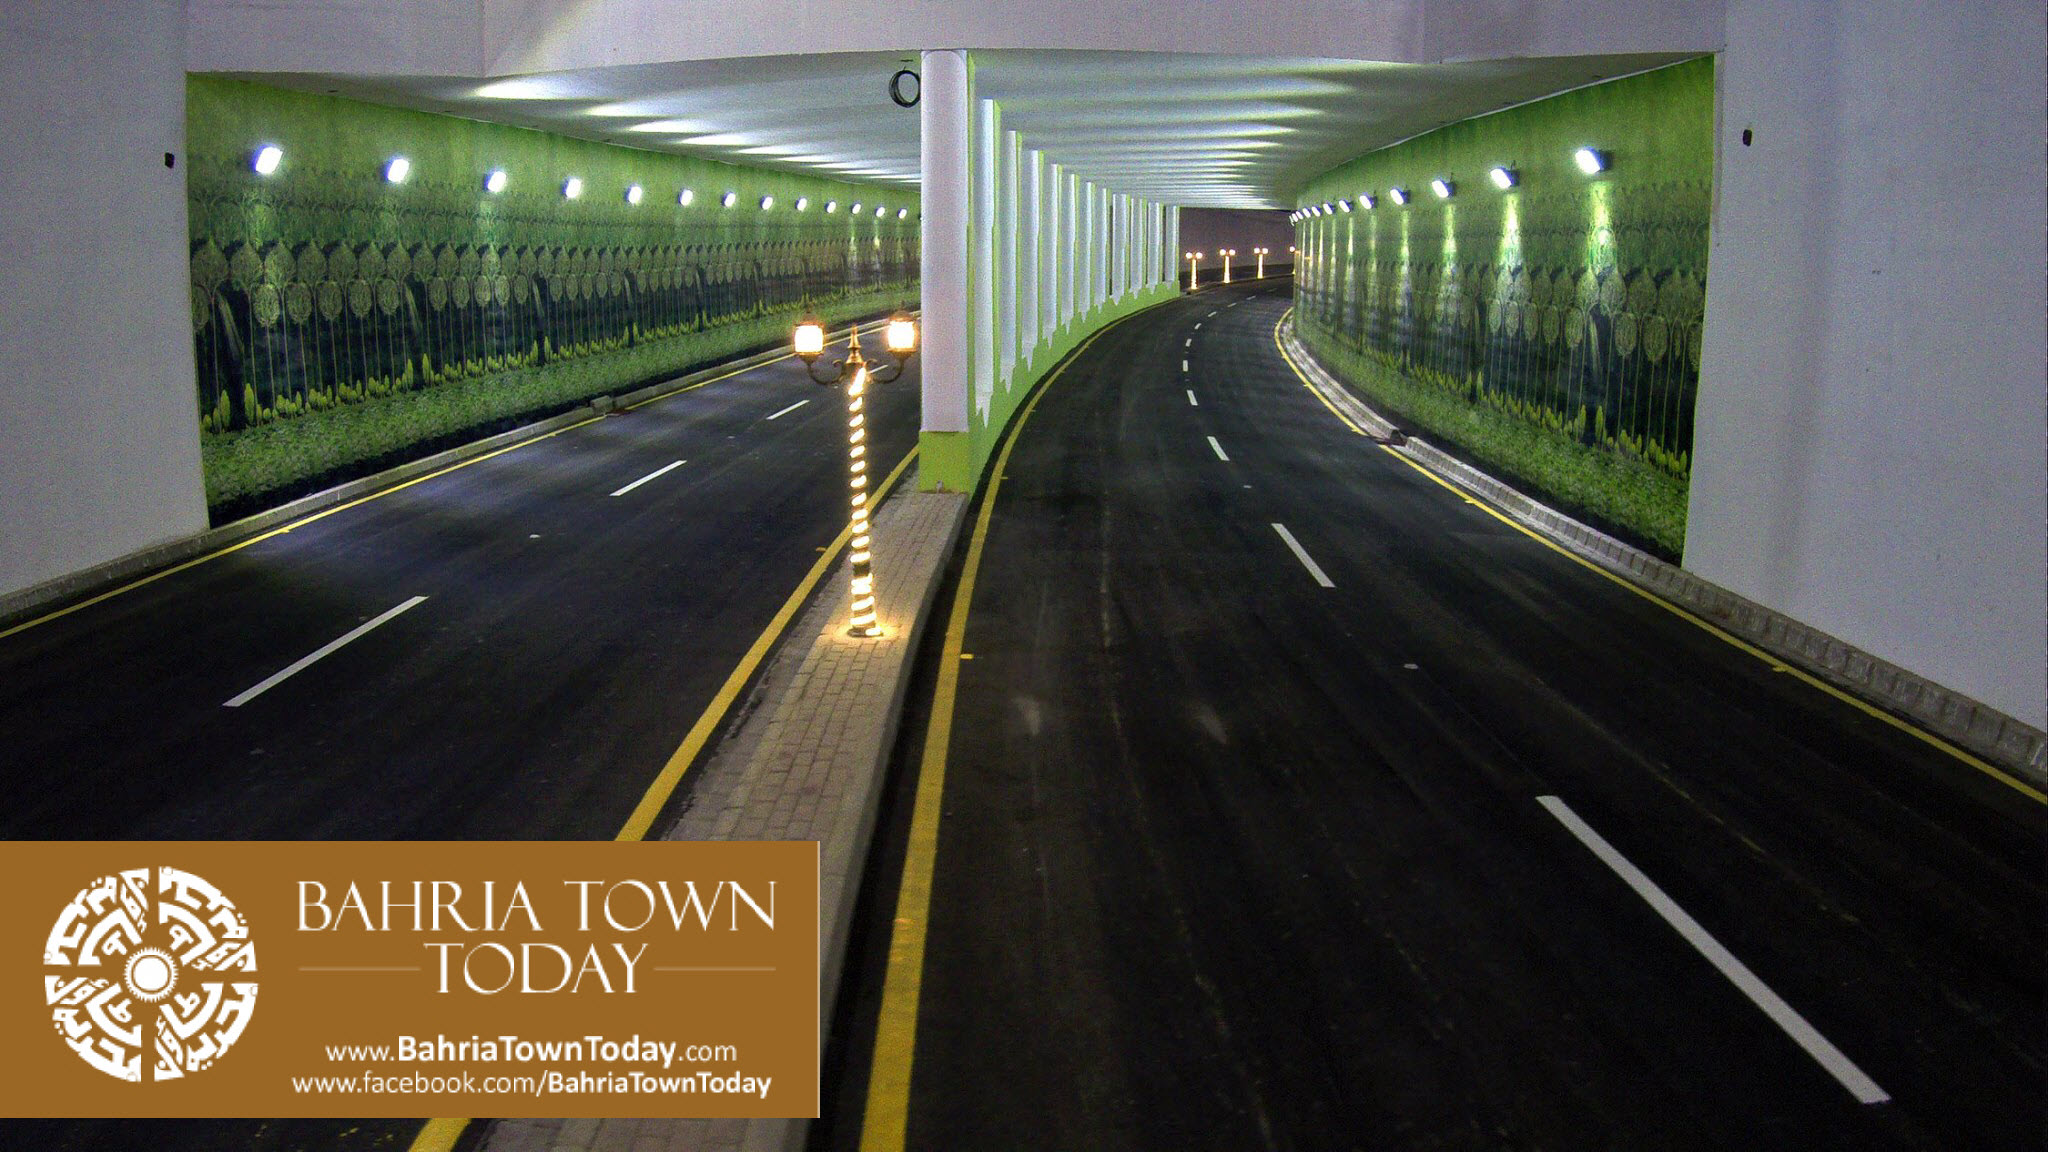 Inauguration of clifton underpasses flyover by malik riaz hussain altavistaventures Gallery